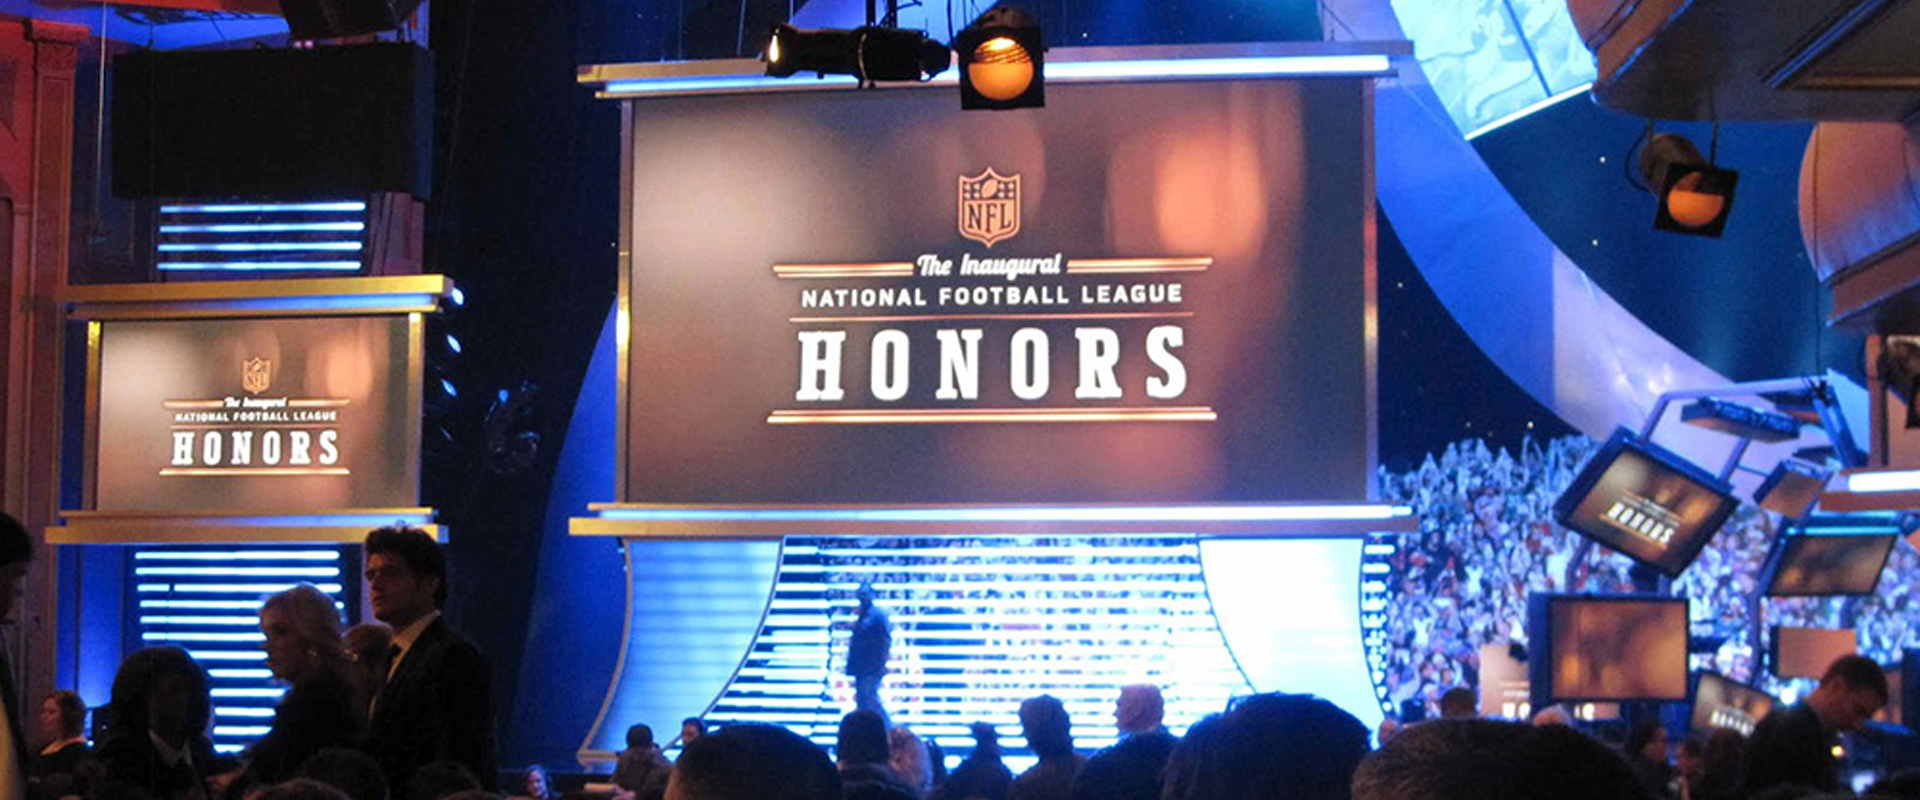 Cowboys Blog - Dallas Cowboys Honors: 2015 Season Awards! 12